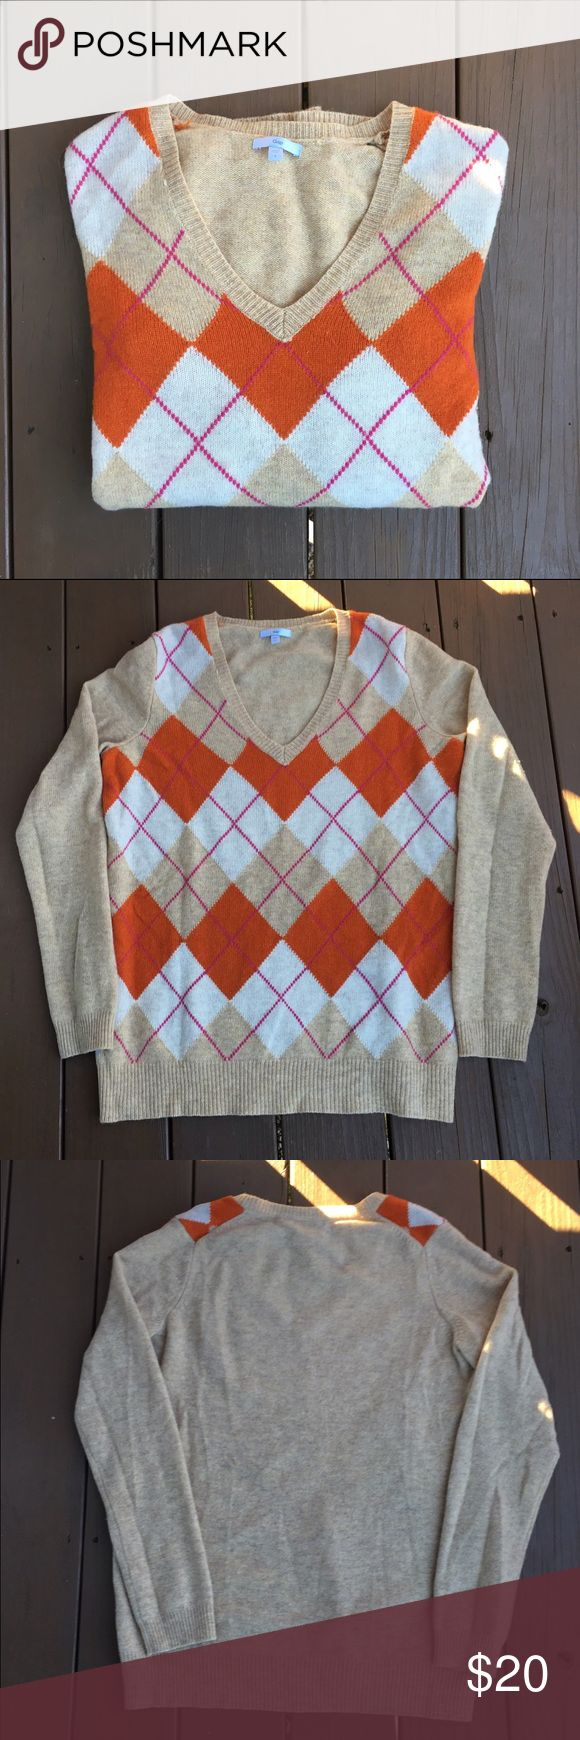 🎉Sale🎉 Gap argyle sweater EUC Argyle sweater from Gap. Sz large. ❌No offers on sale price please!!❌ GAP Sweaters V-Necks